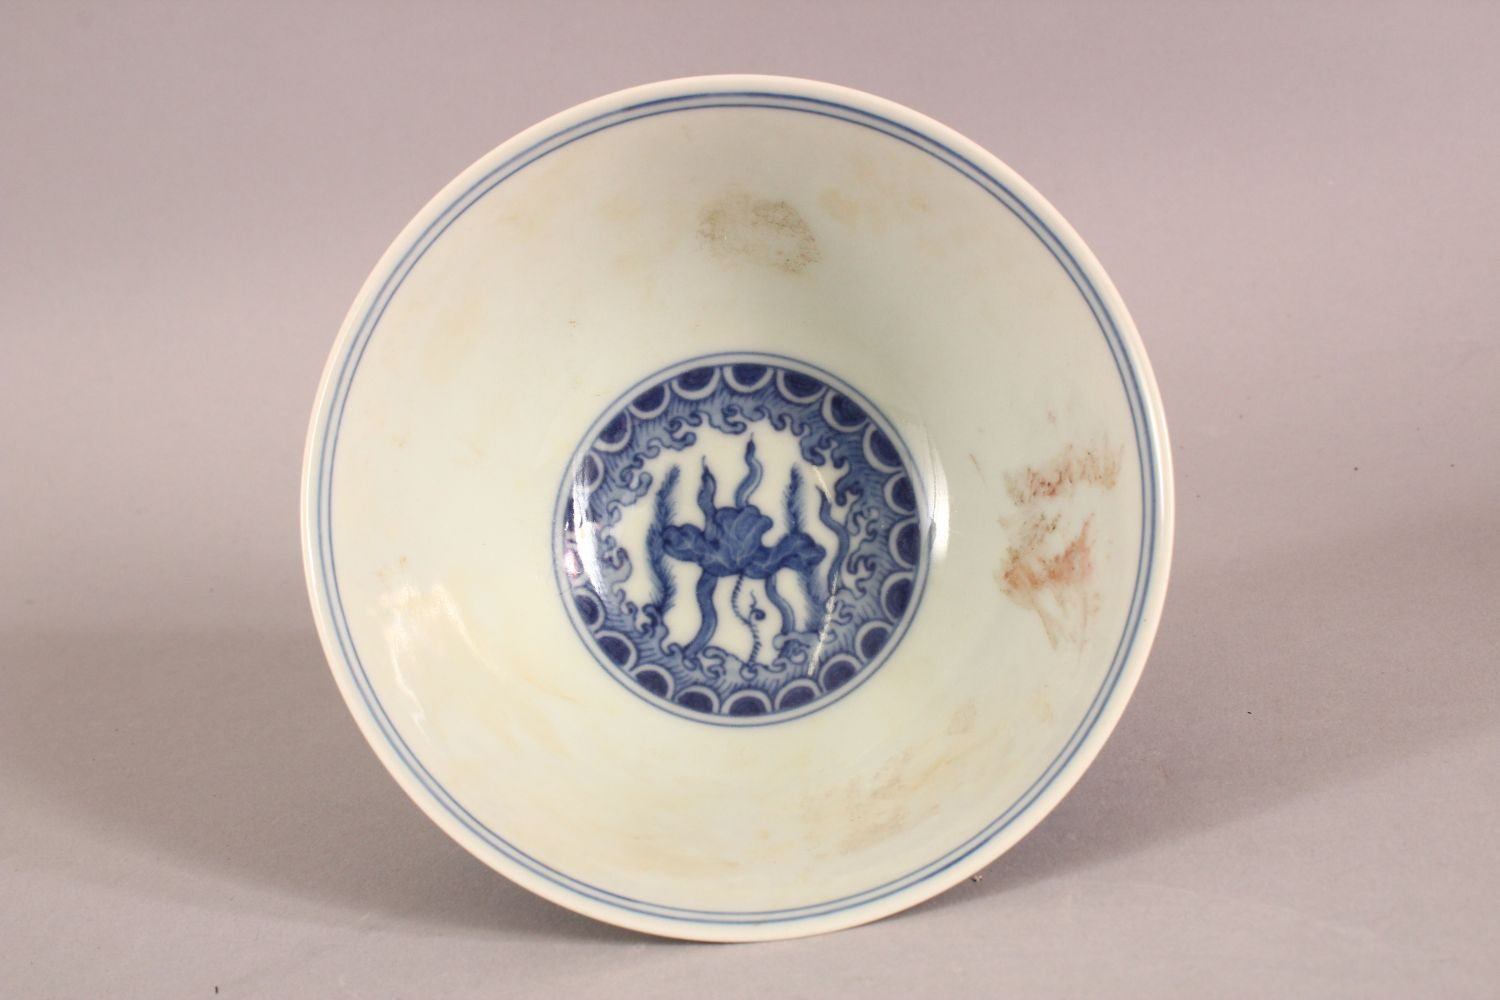 A CHINESE BLUE AND WHITE PORCELAIN STEM CUP, the bowl painted with fish amongst aquatic flora - Image 5 of 6